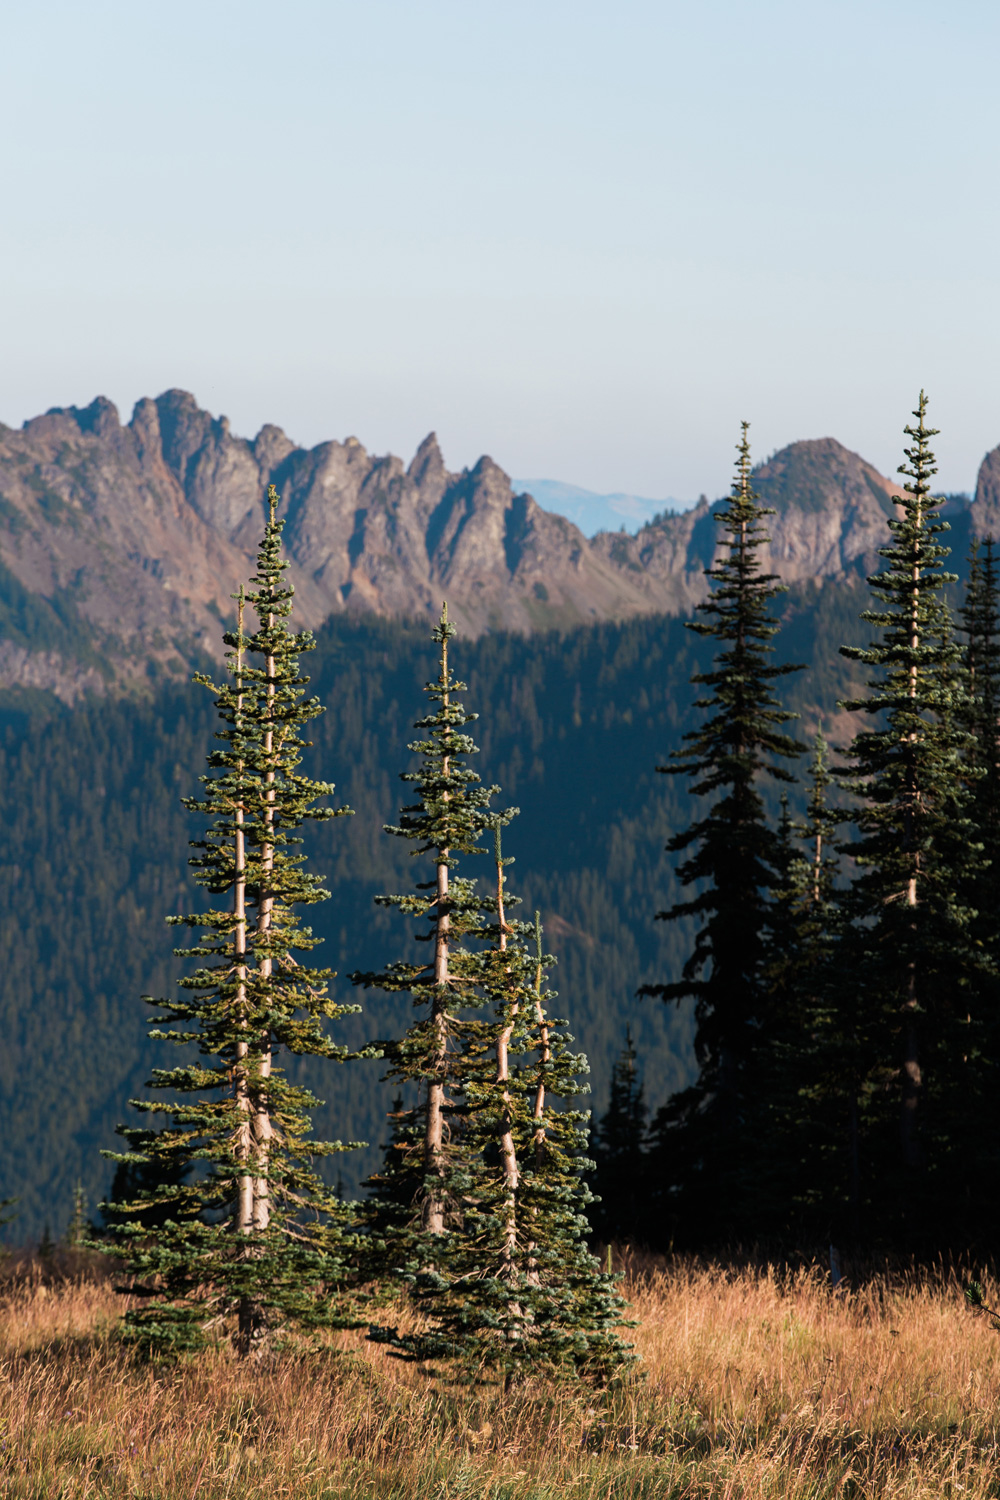 CindyGiovagnoli_Mount_Rainier_National_Park_Washington-003.jpg